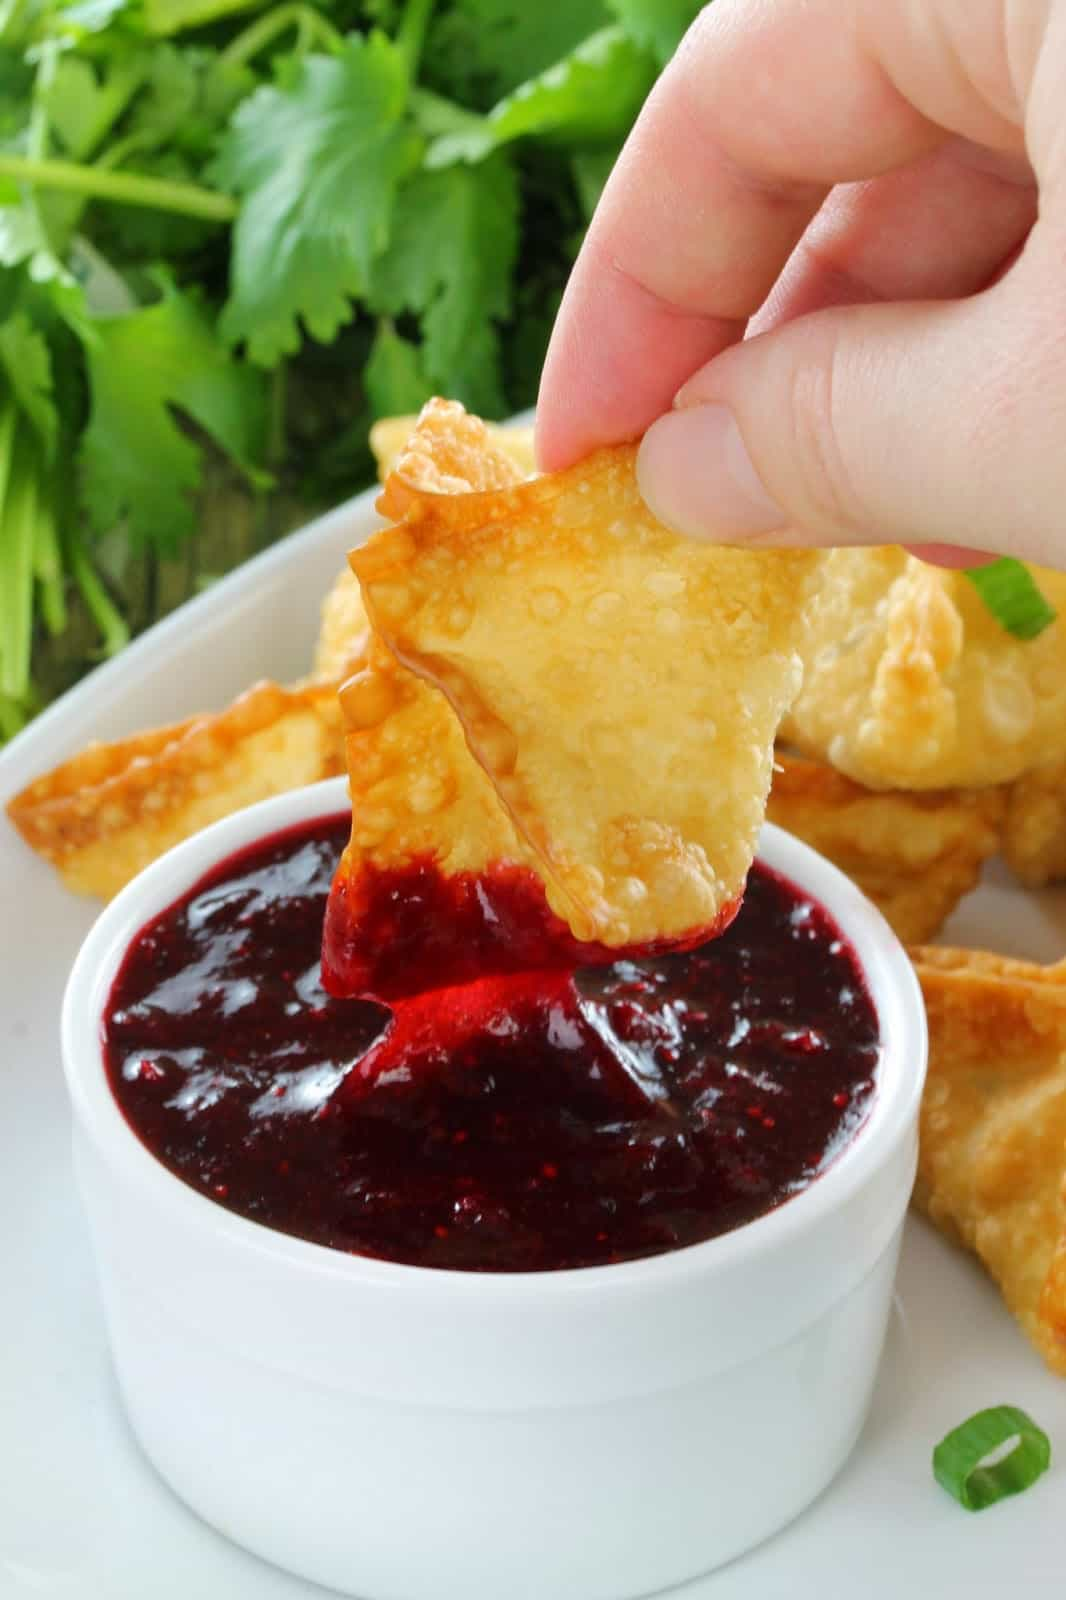 A crispy rangoon is dipped in homemade Cranberry Sweet and Sour Dipping Sauce